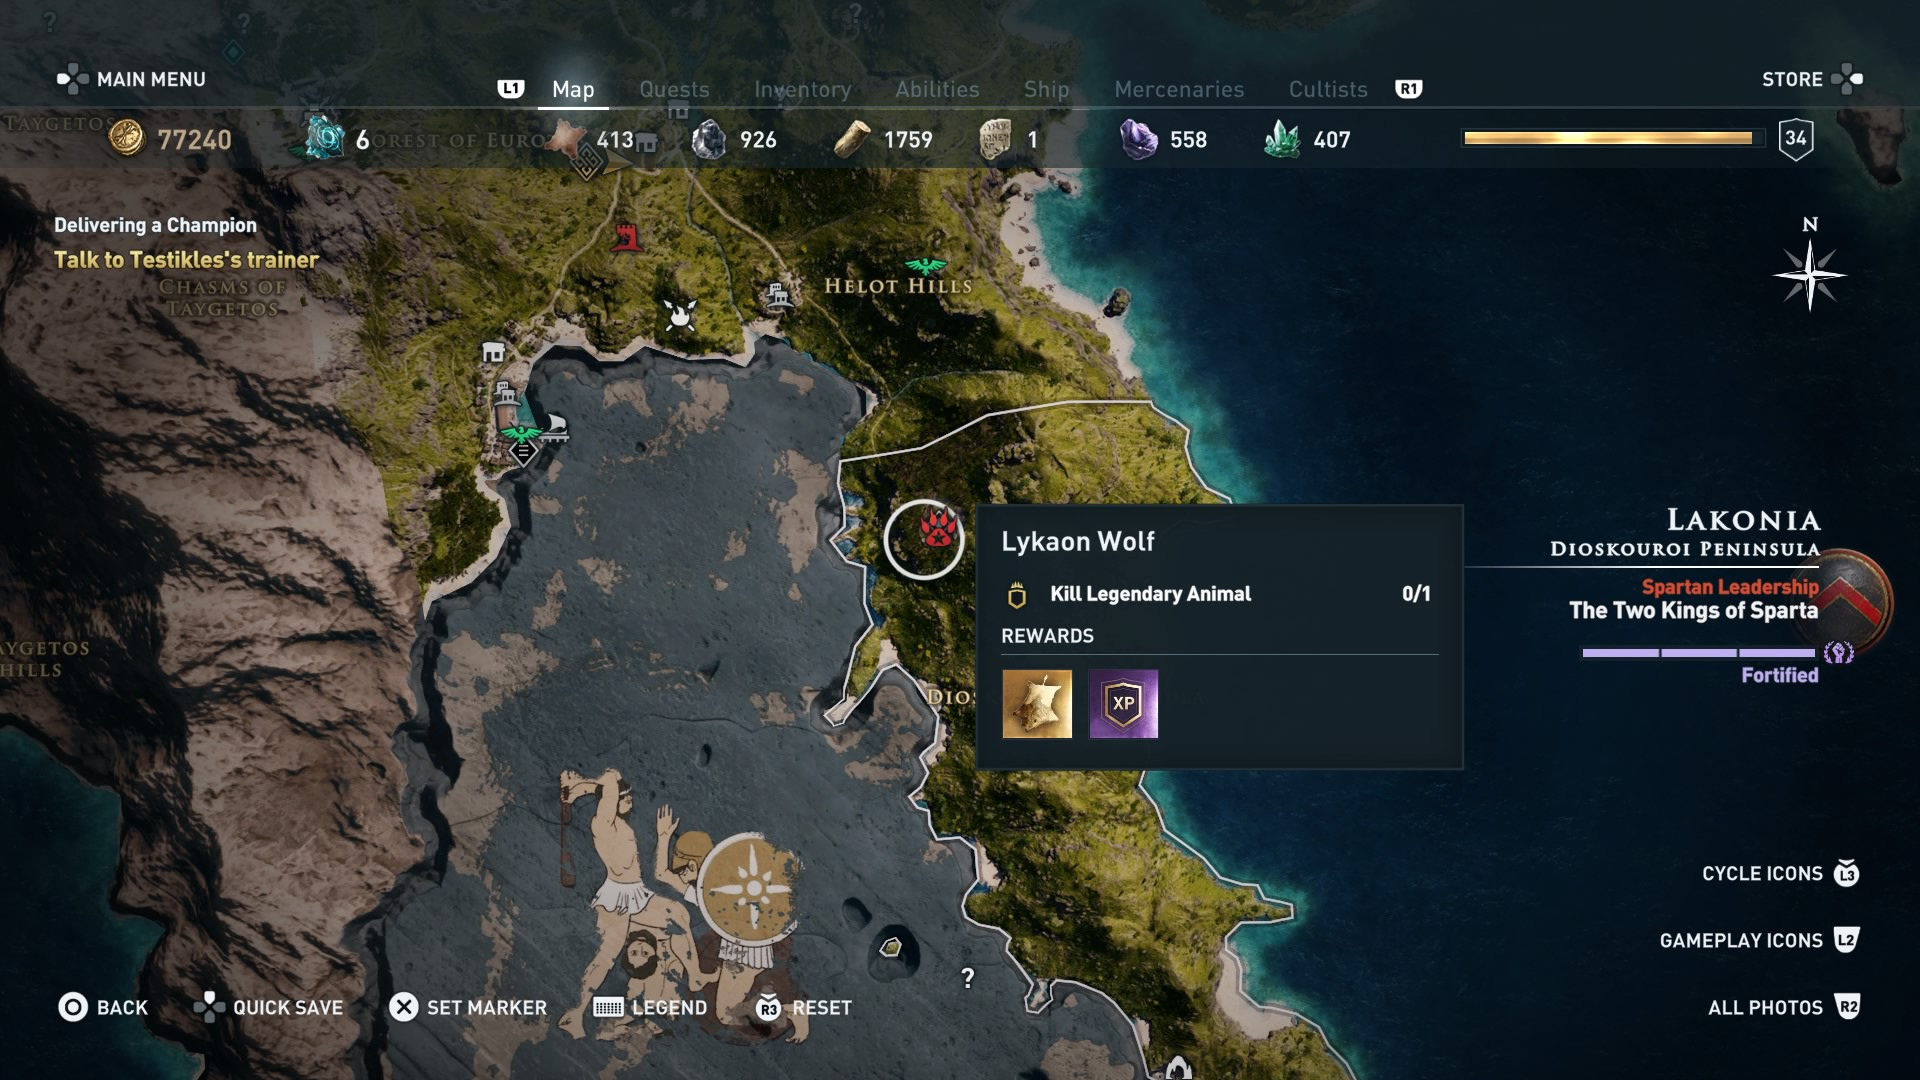 Assassin's Creed Odyssey: The Lykaon Wolf location